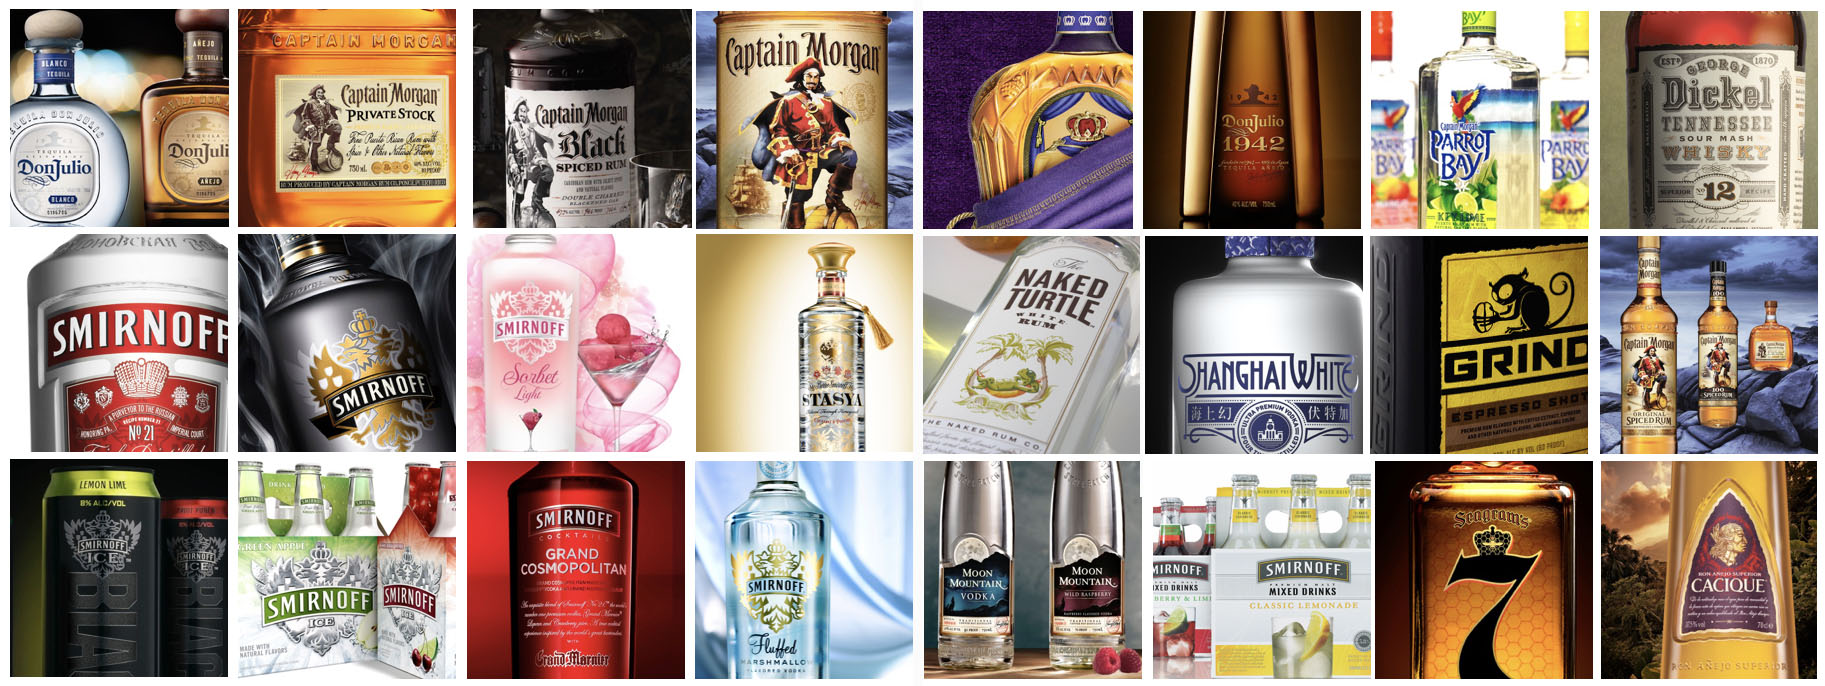 As Executive Cretive Director at Landor, Richard worked to catapult multiple Diageo brands to worldwide success, including Smirnoff,Ketel One, Don Julio tequila, and Johnnie Walker.